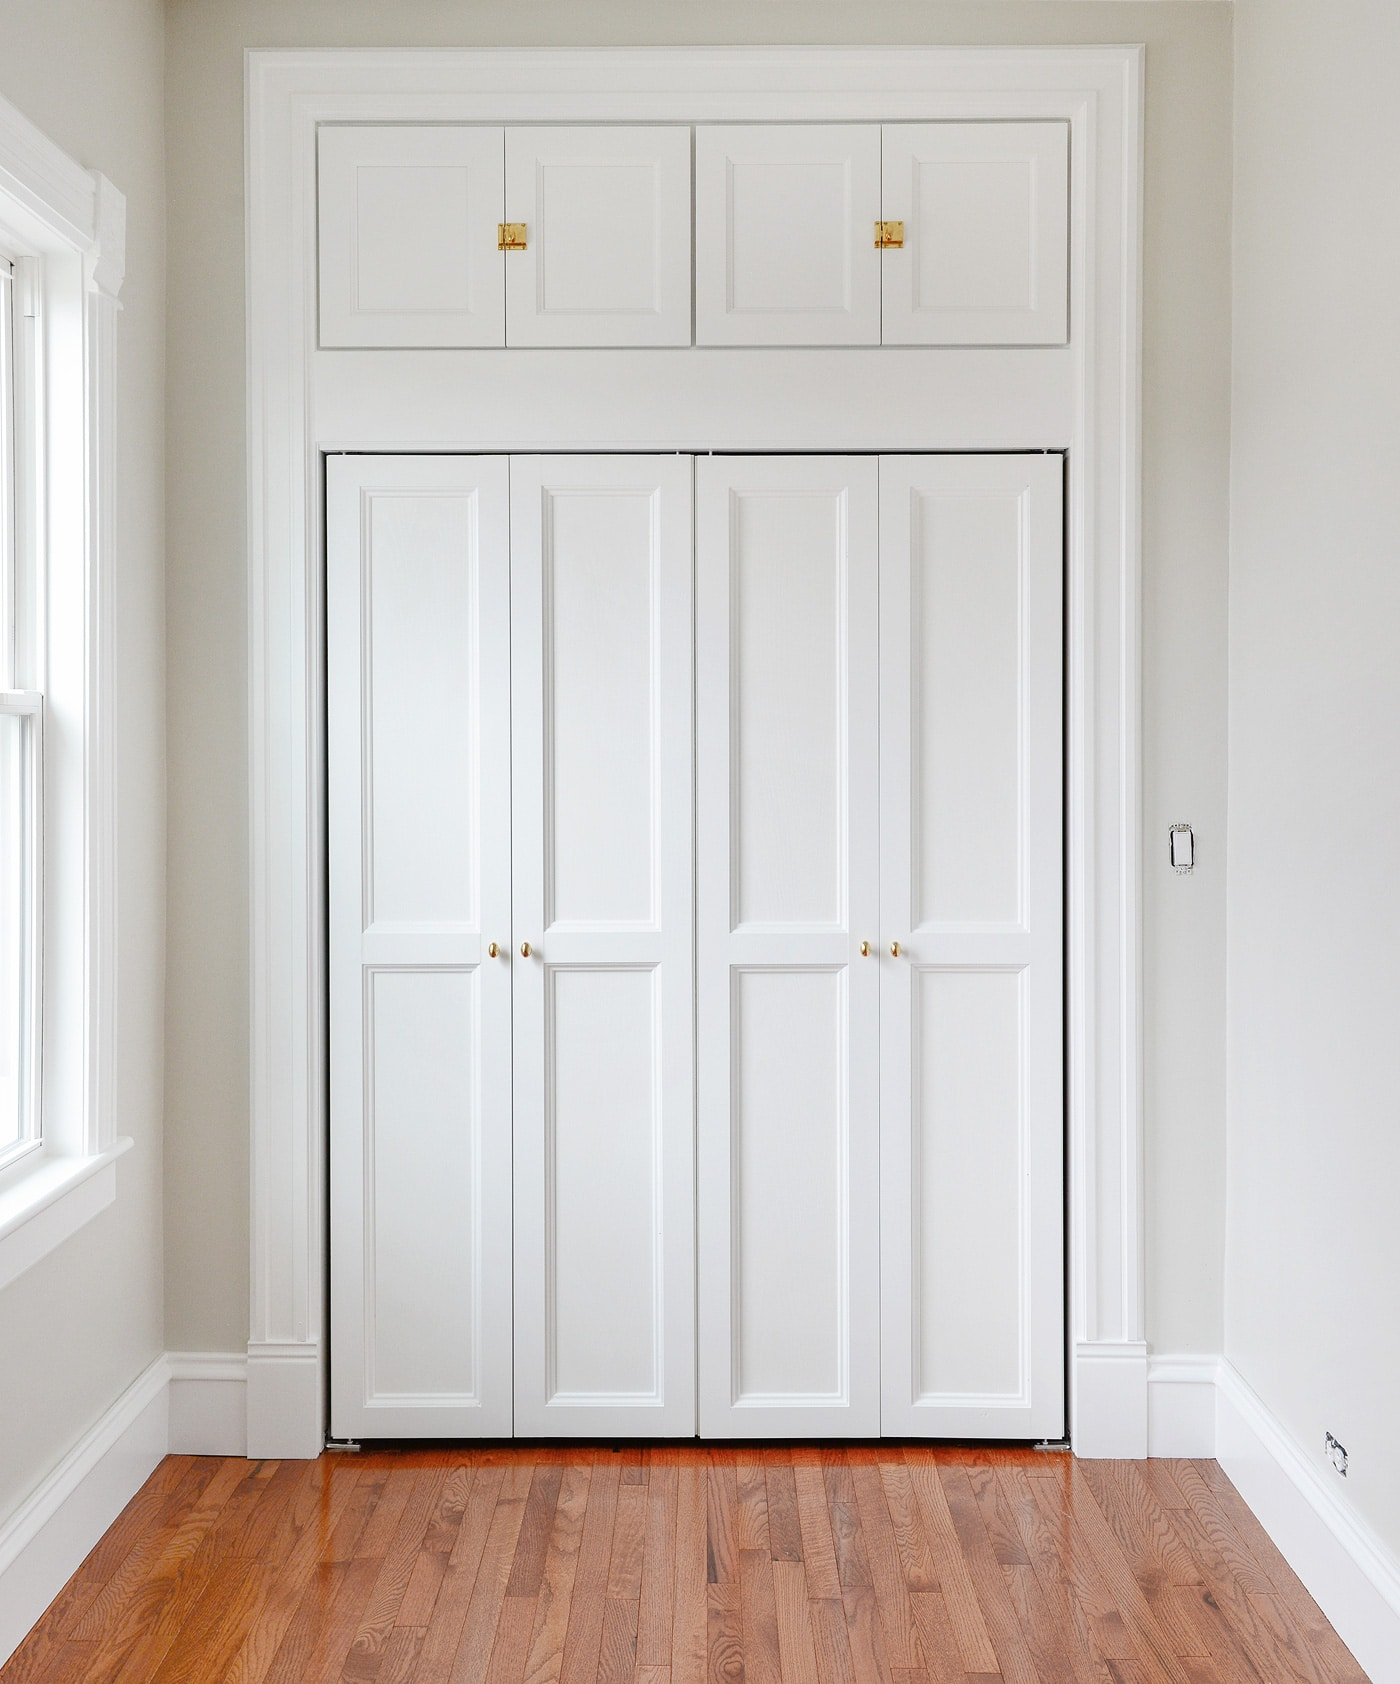 & How We Added Extra Hunky Trim to Our Bi-Fold Doors | Yellow Brick Home